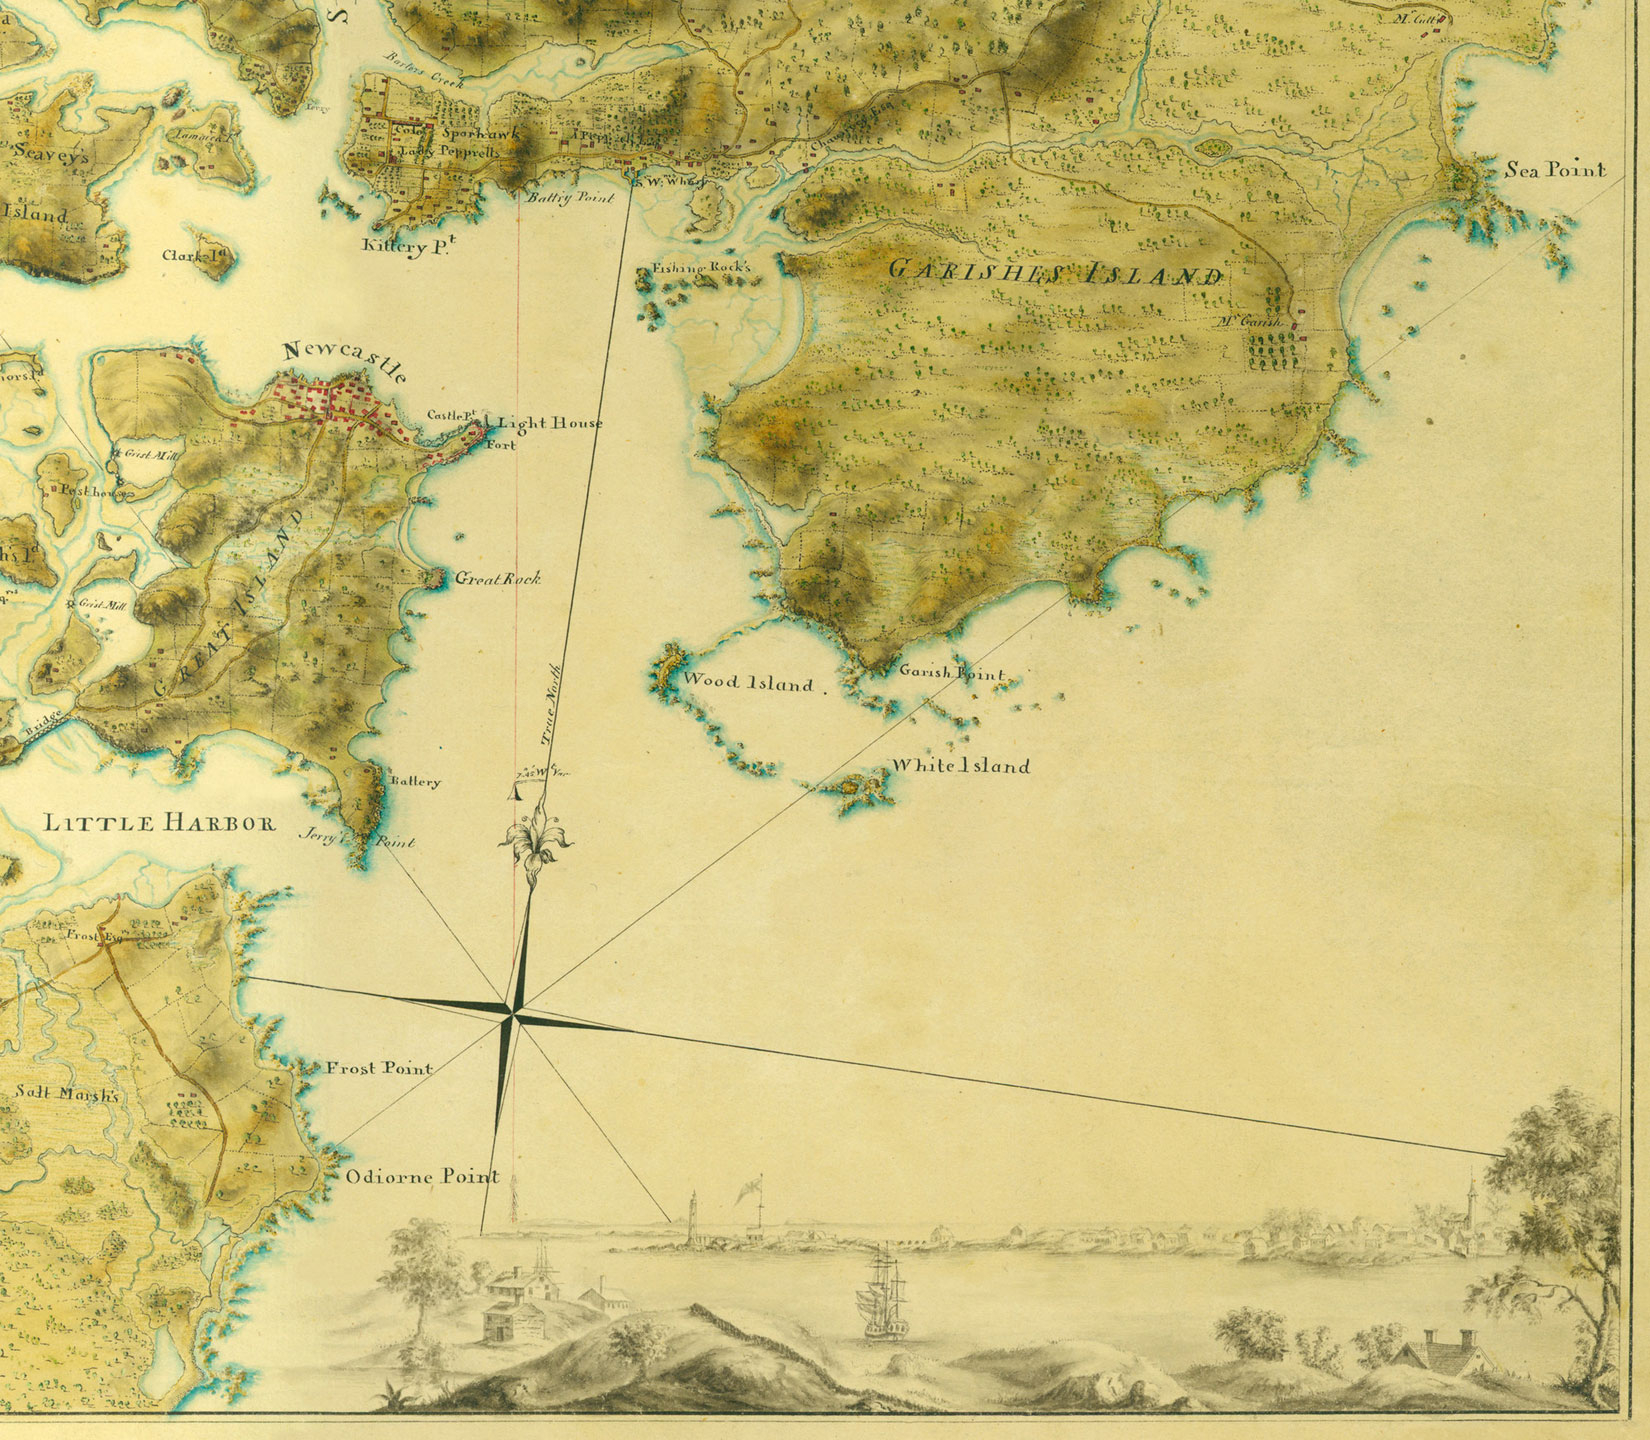 A historic map is shown of islands, shoreline, and bays. The water is light yellow and the land is darker with grass and rivers indicated. A compass is in the middle of the map in the water. A few islands, bays, and settlements are marked on the map. On the bottom fifth of the map is a drawing of a settlement. It is on the coast and has houses, trees, and ships.